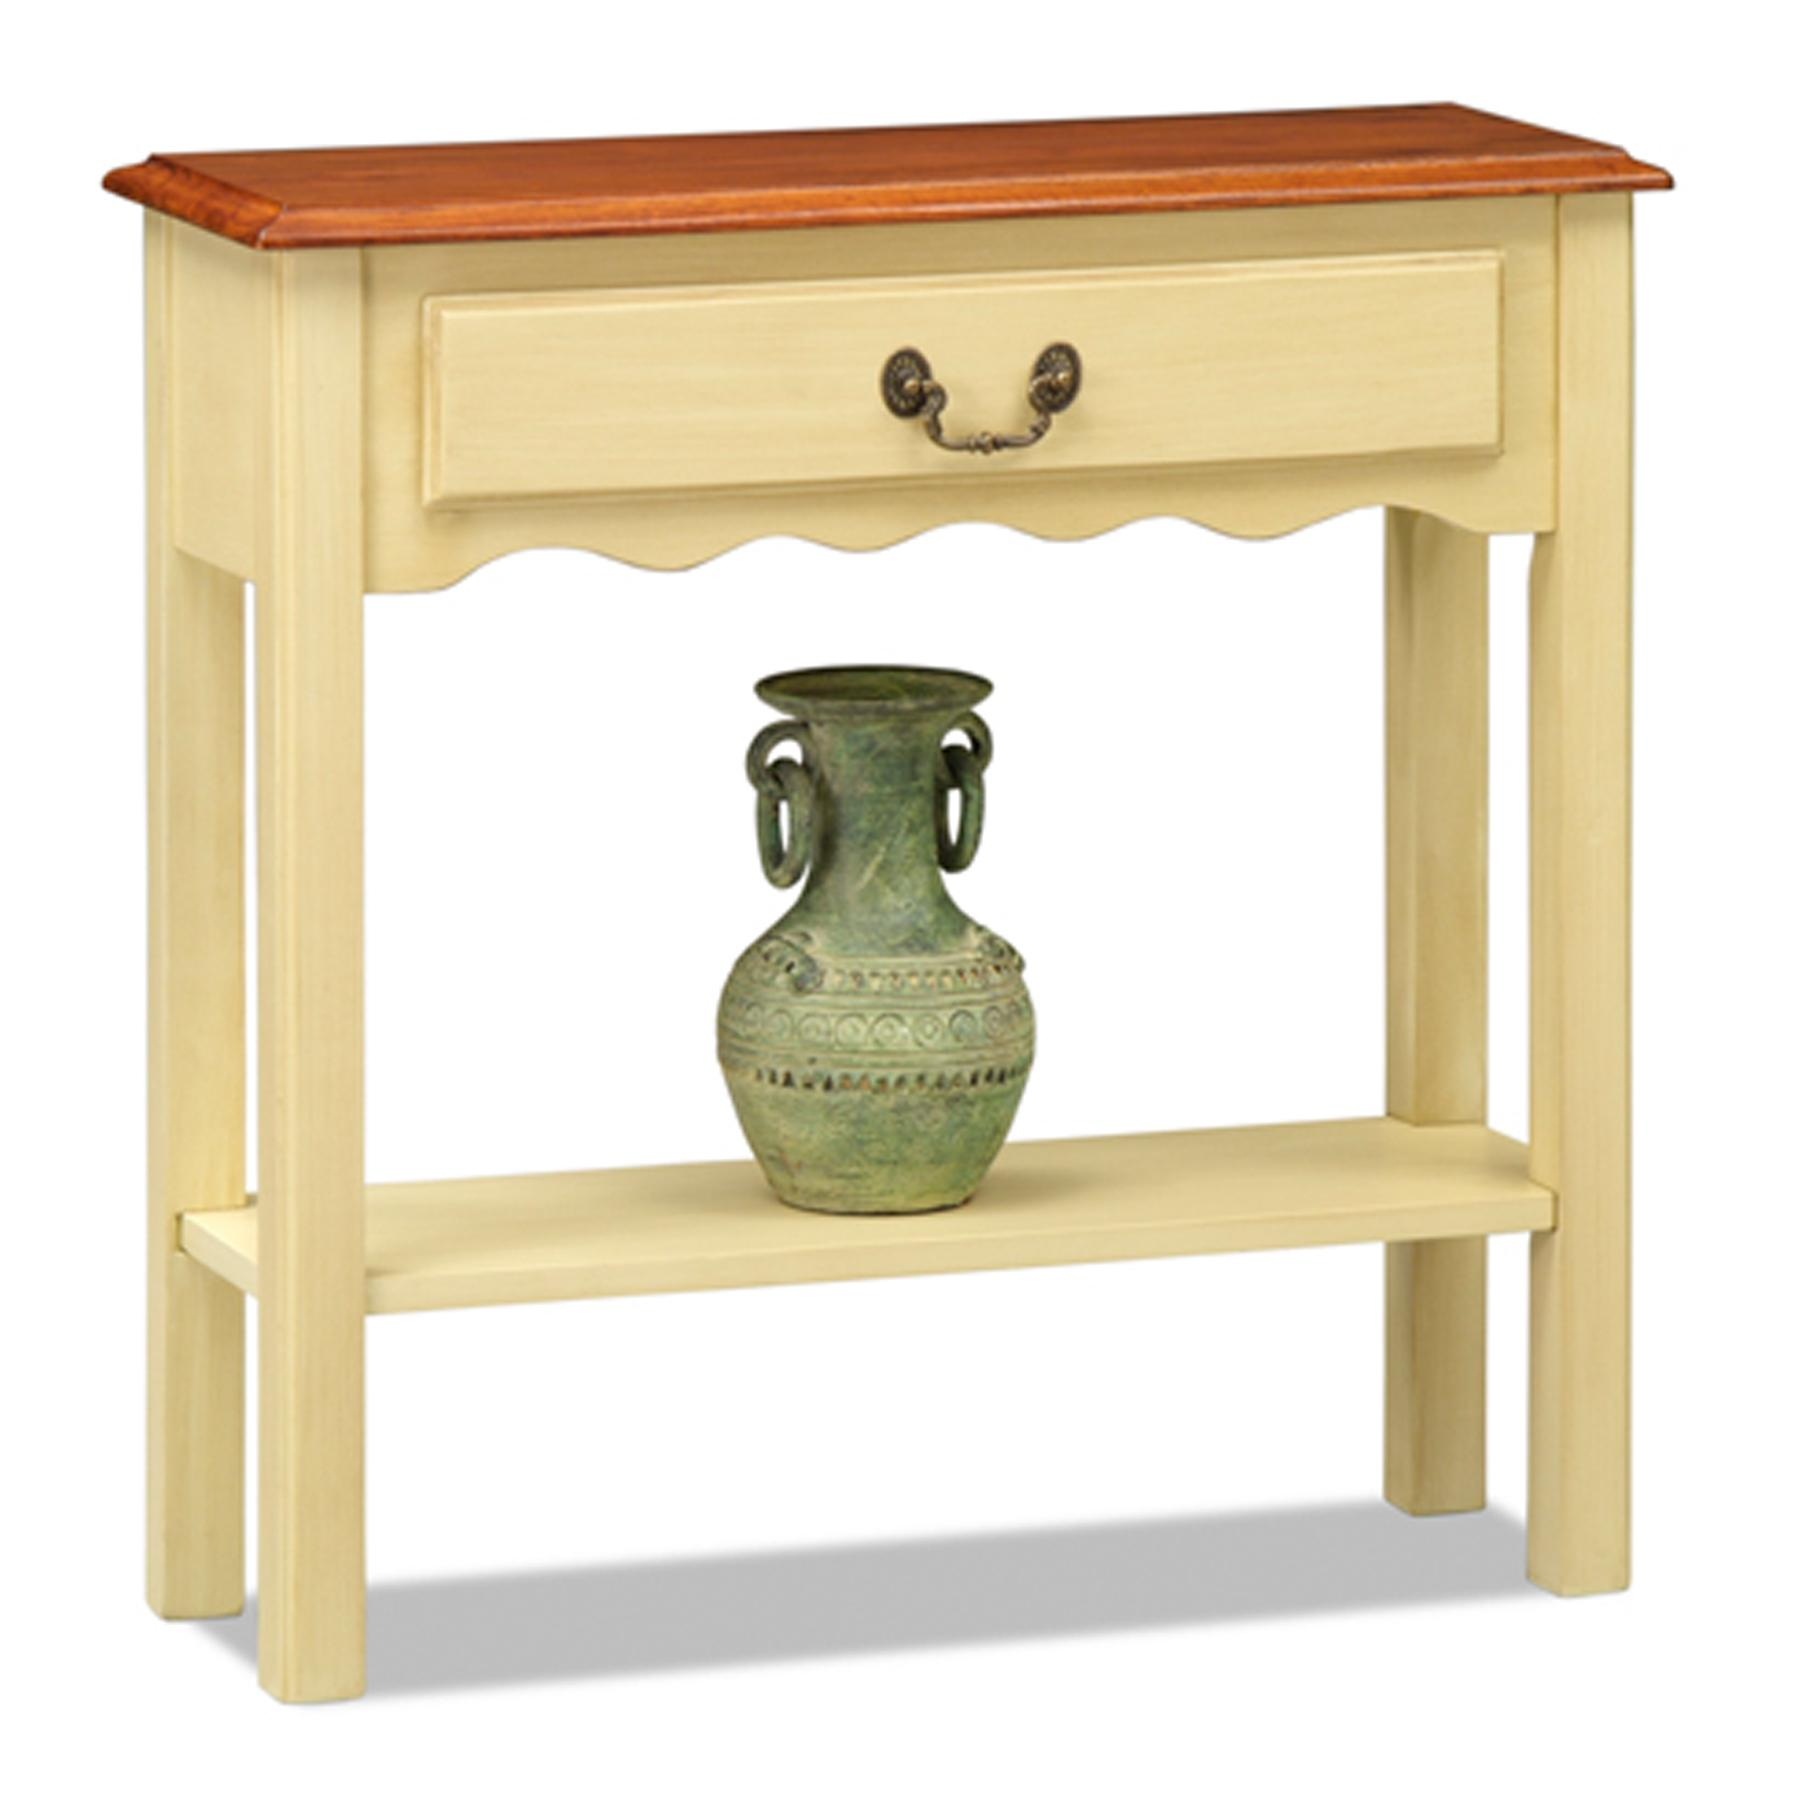 Console Table, Hall Table, Sofa Table, Hall Console, Entryway Table